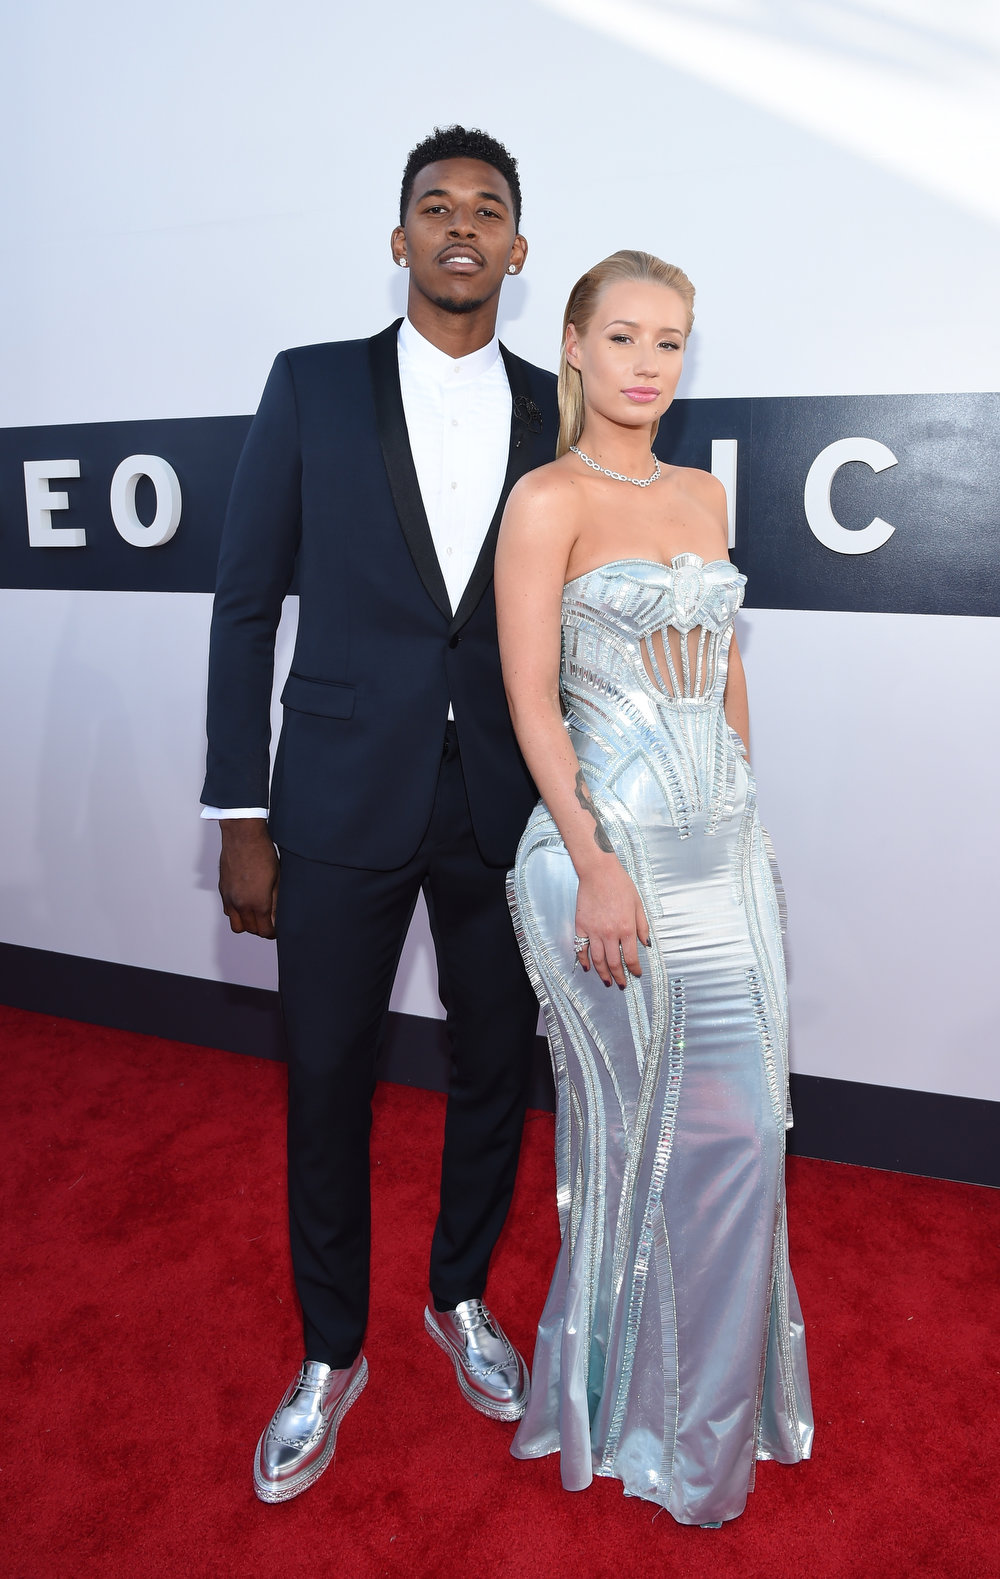 . Basketball player Nick Young (L) and rapper Iggy Azalea attend the 2014 MTV Video Music Awards at The Forum on August 24, 2014 in Inglewood, California.  (Photo by Larry Busacca/Getty Images for MTV)